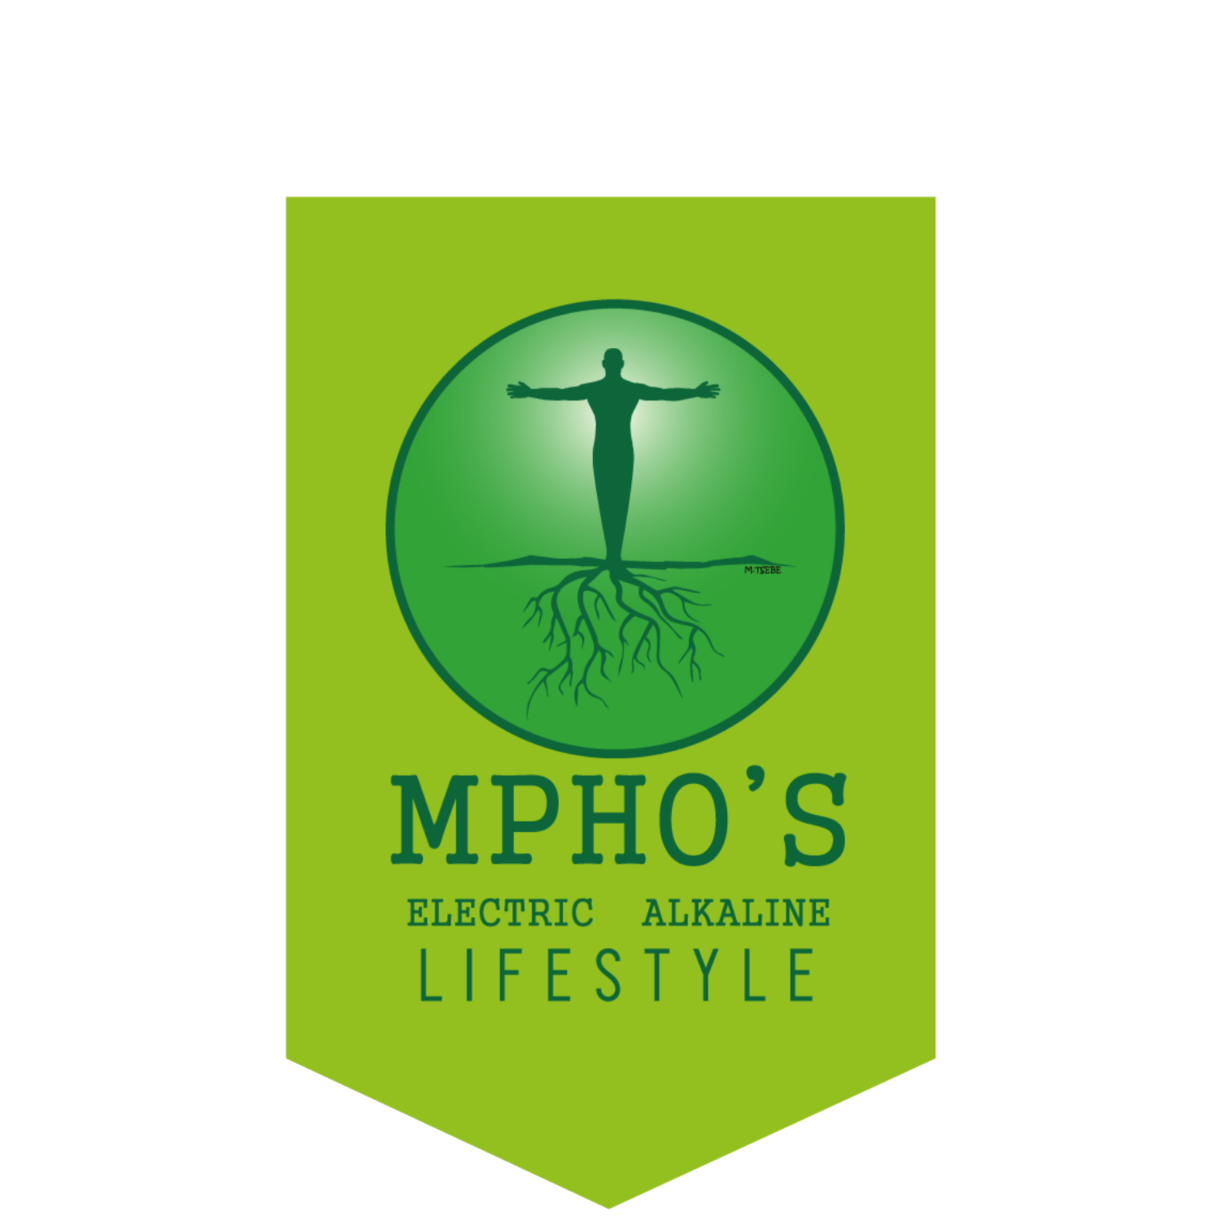 Mpho's Electric Alkaline Lifestyle